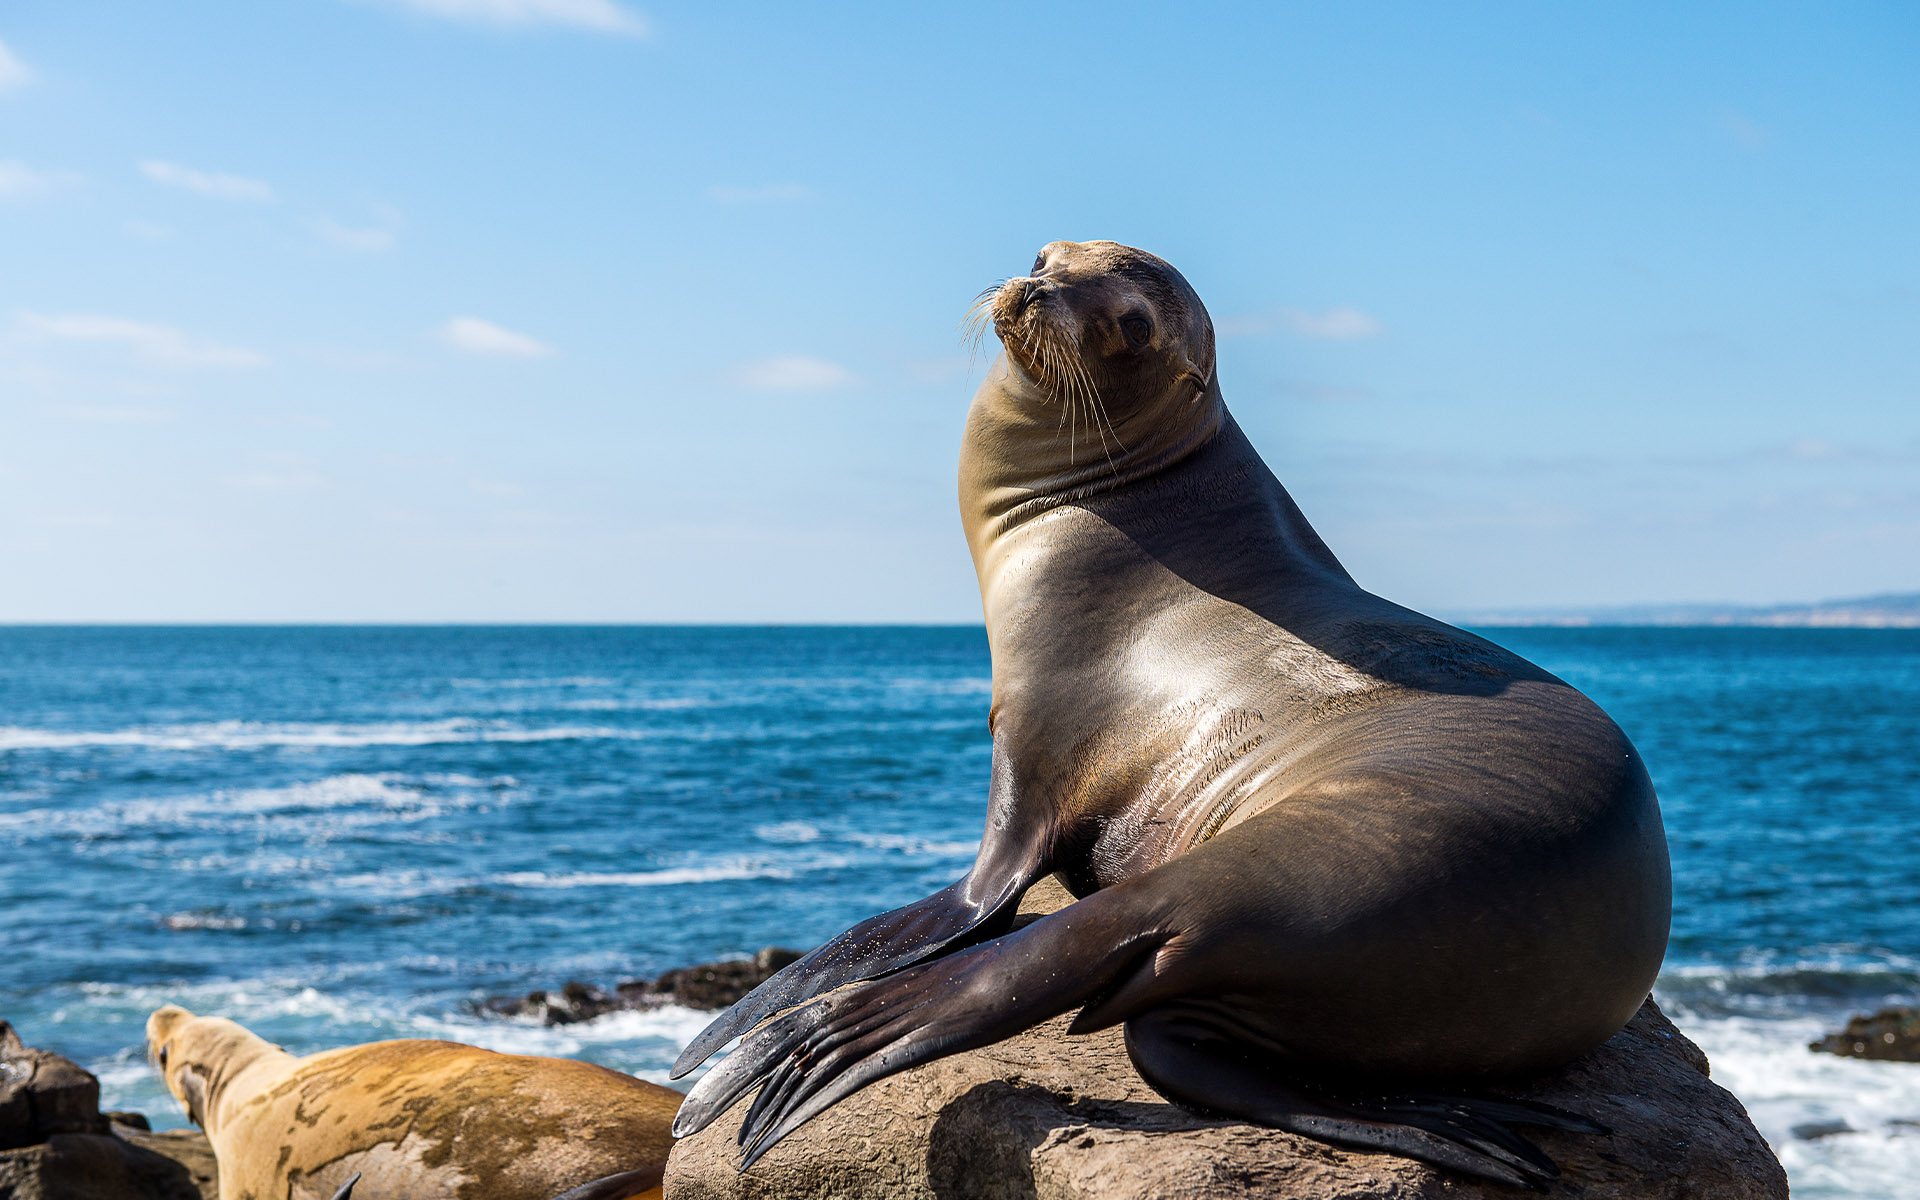 Homepage - California Sea Lion Looking Back as if He is Posing For Camera on a Sunny Day at the Beach